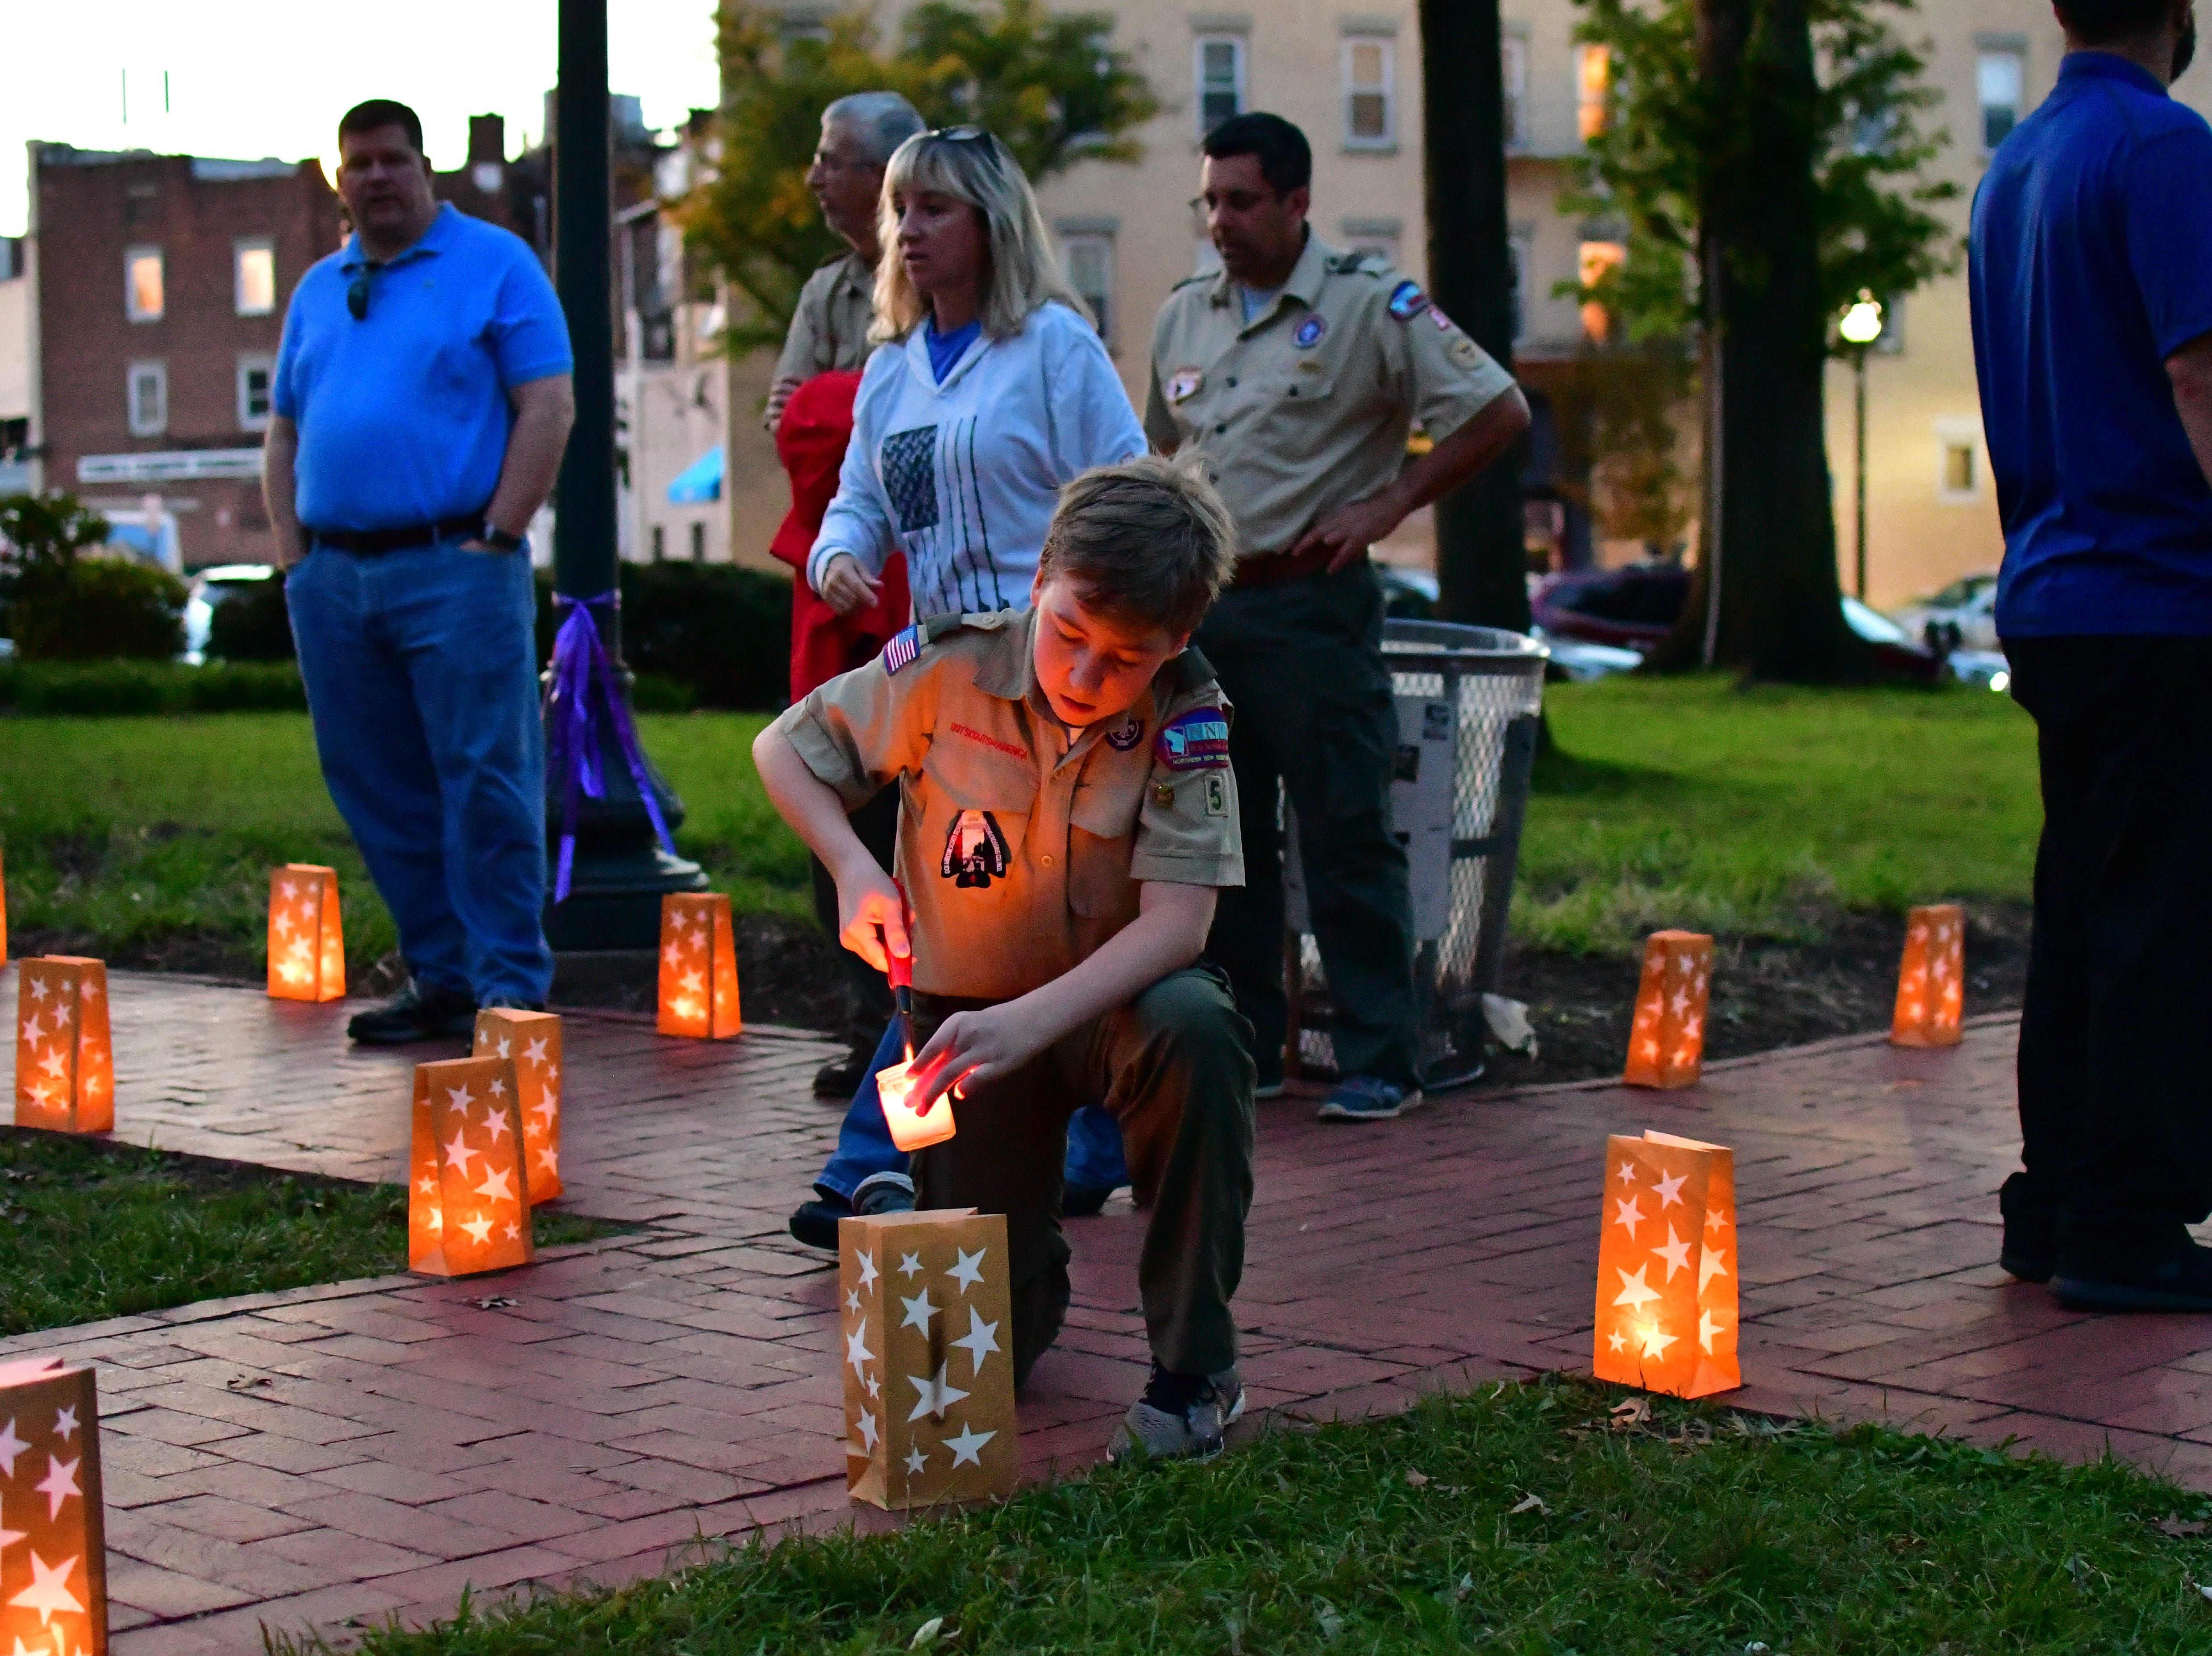 Spencer Stephens lights a luminary before the ceremony. The Gold Star Mother's Day Committee sponsored its eighth annual event commemorating Gold Star Mother's Day on Sept. 30, at Van Neste Park, Ridgewood. After a short ceremony, hundreds of luminaries were lit to honor Gold Star Mothers (moms who had lost sons and daughters to the war) and their families.